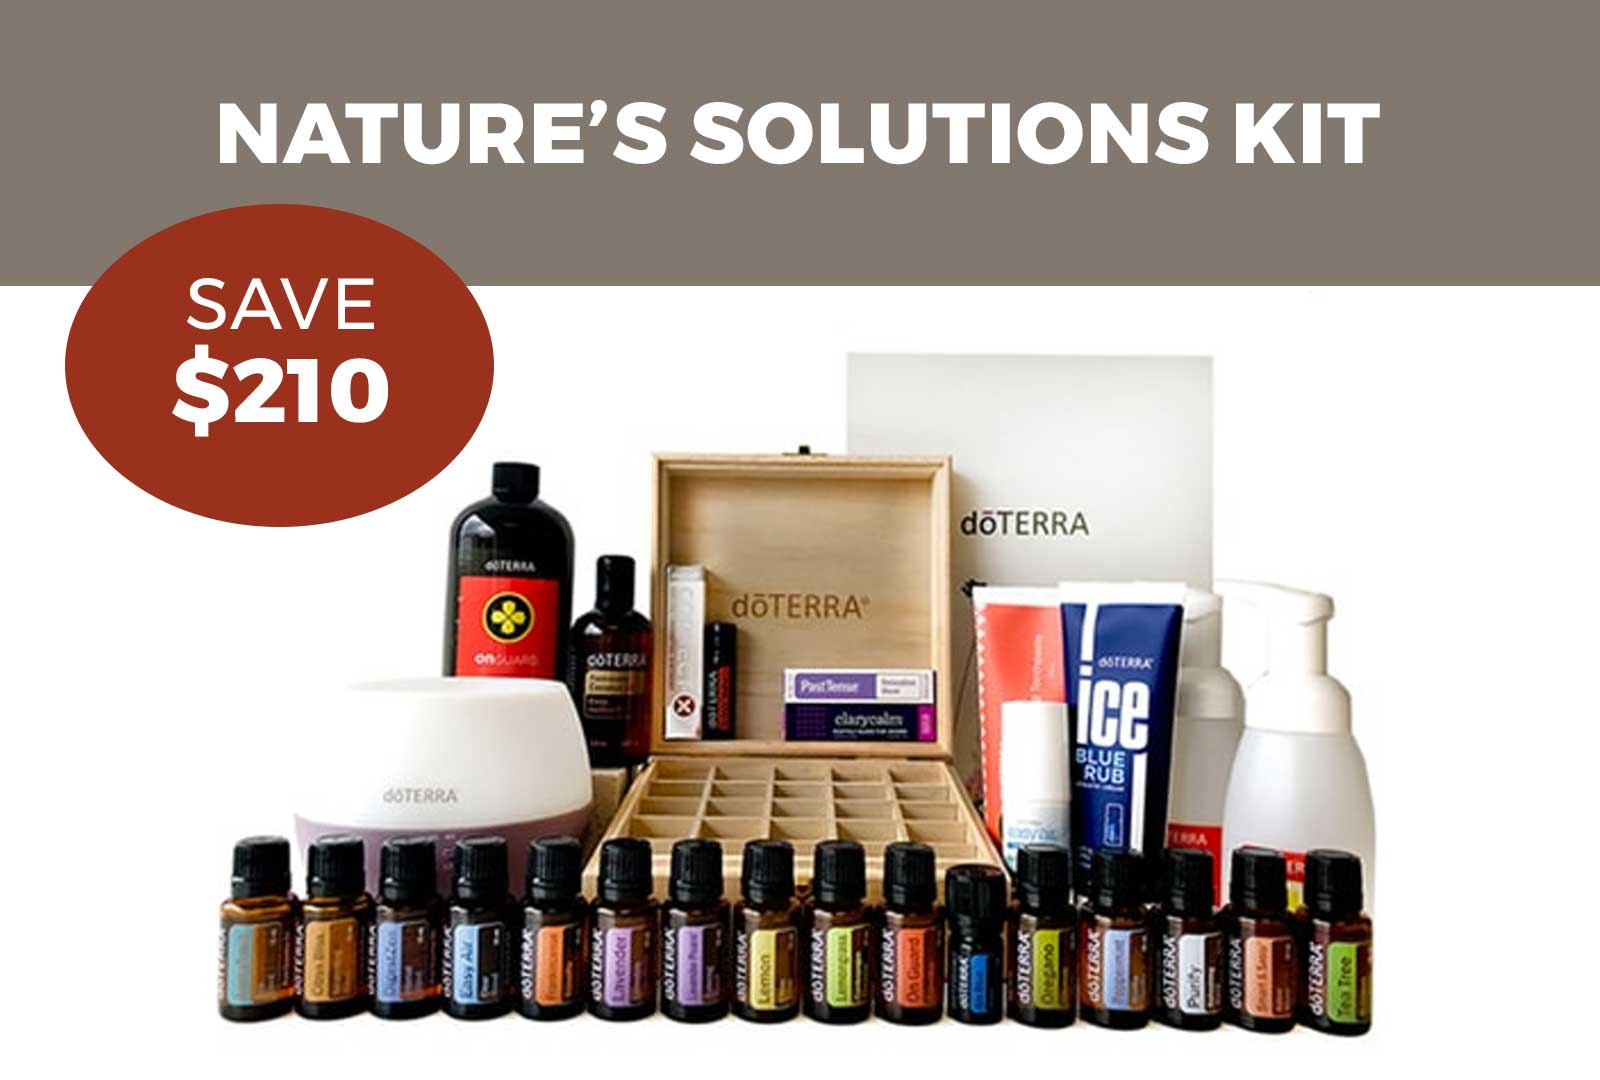 Nature's Solutions Kit with dōTERRA Wholesale Account